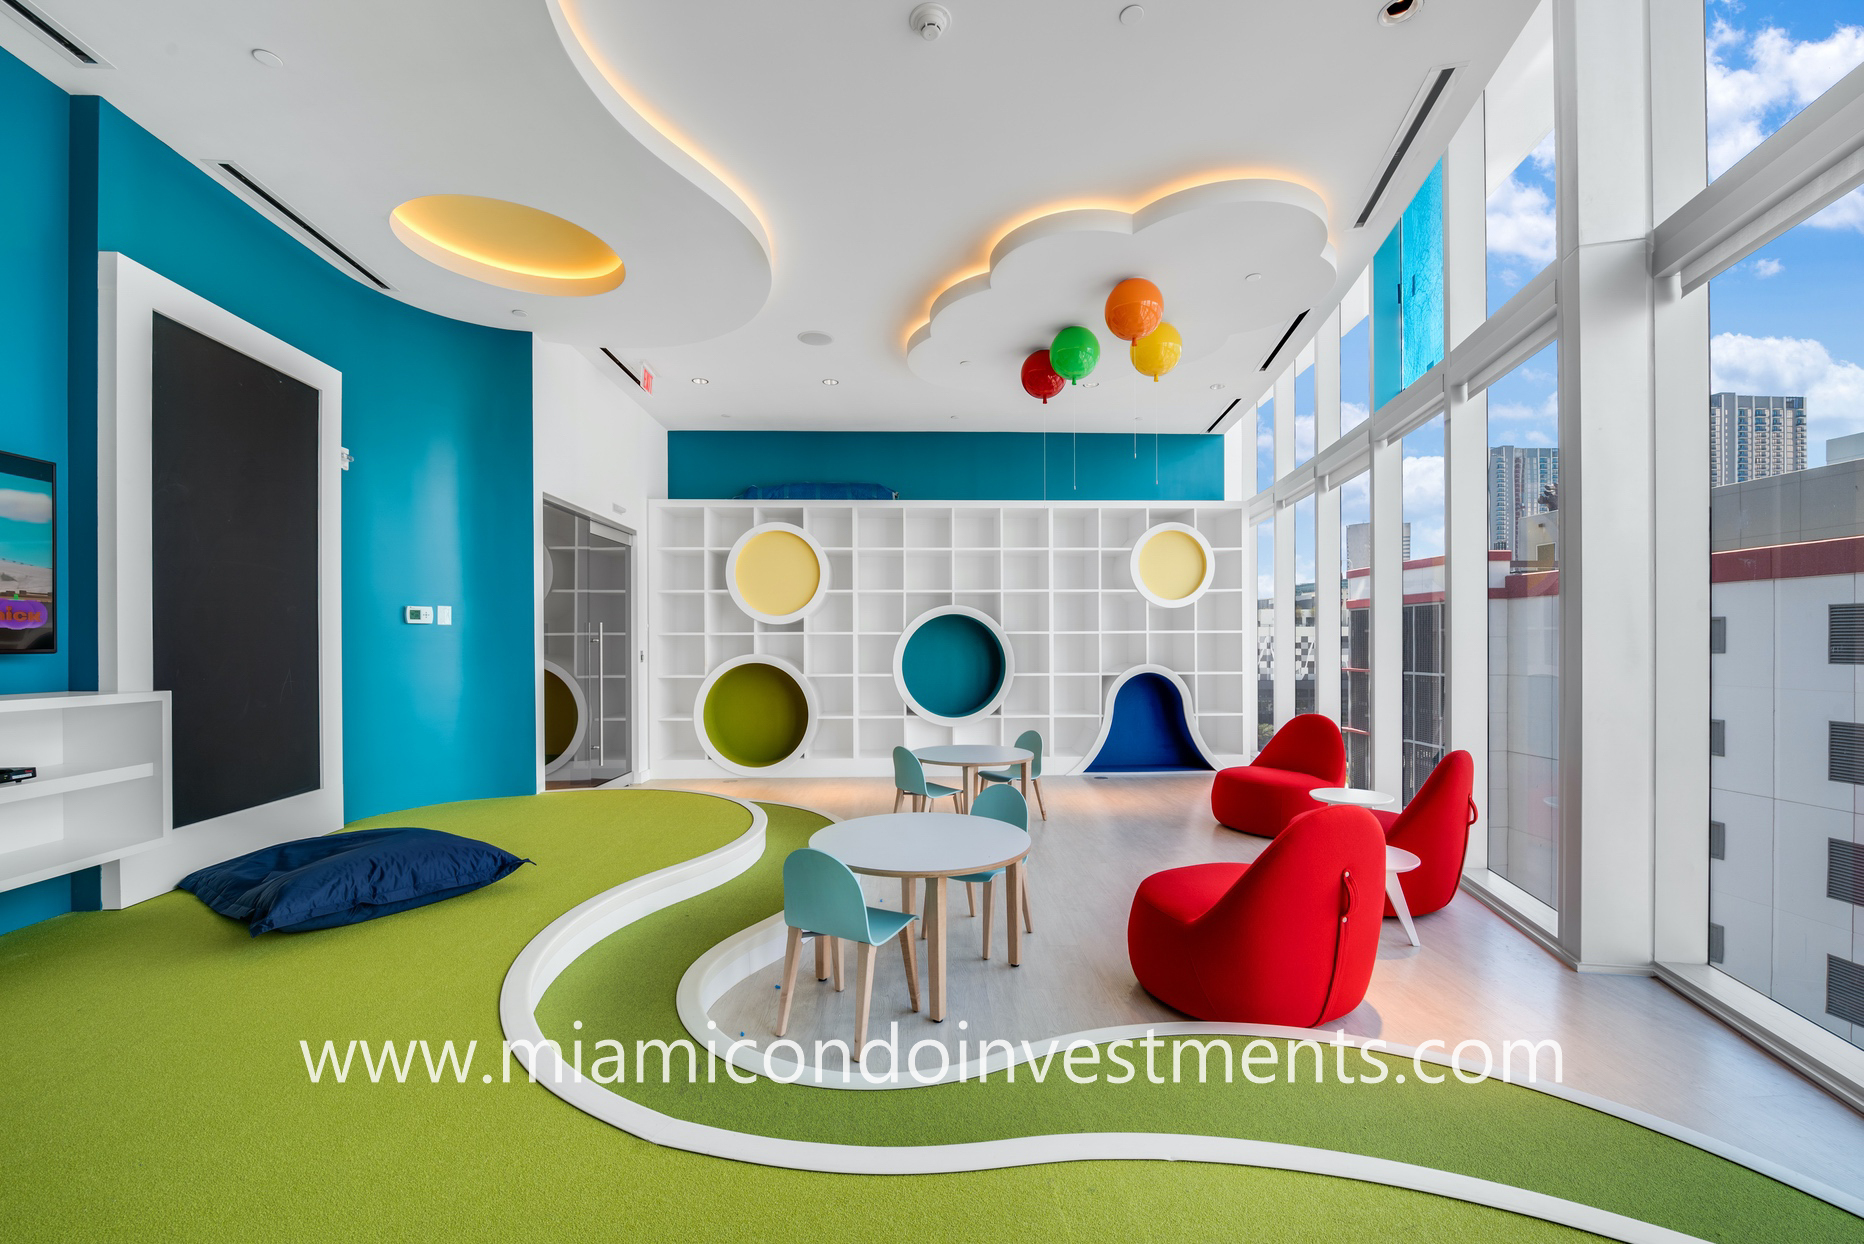 Paramount Miami children's playroom